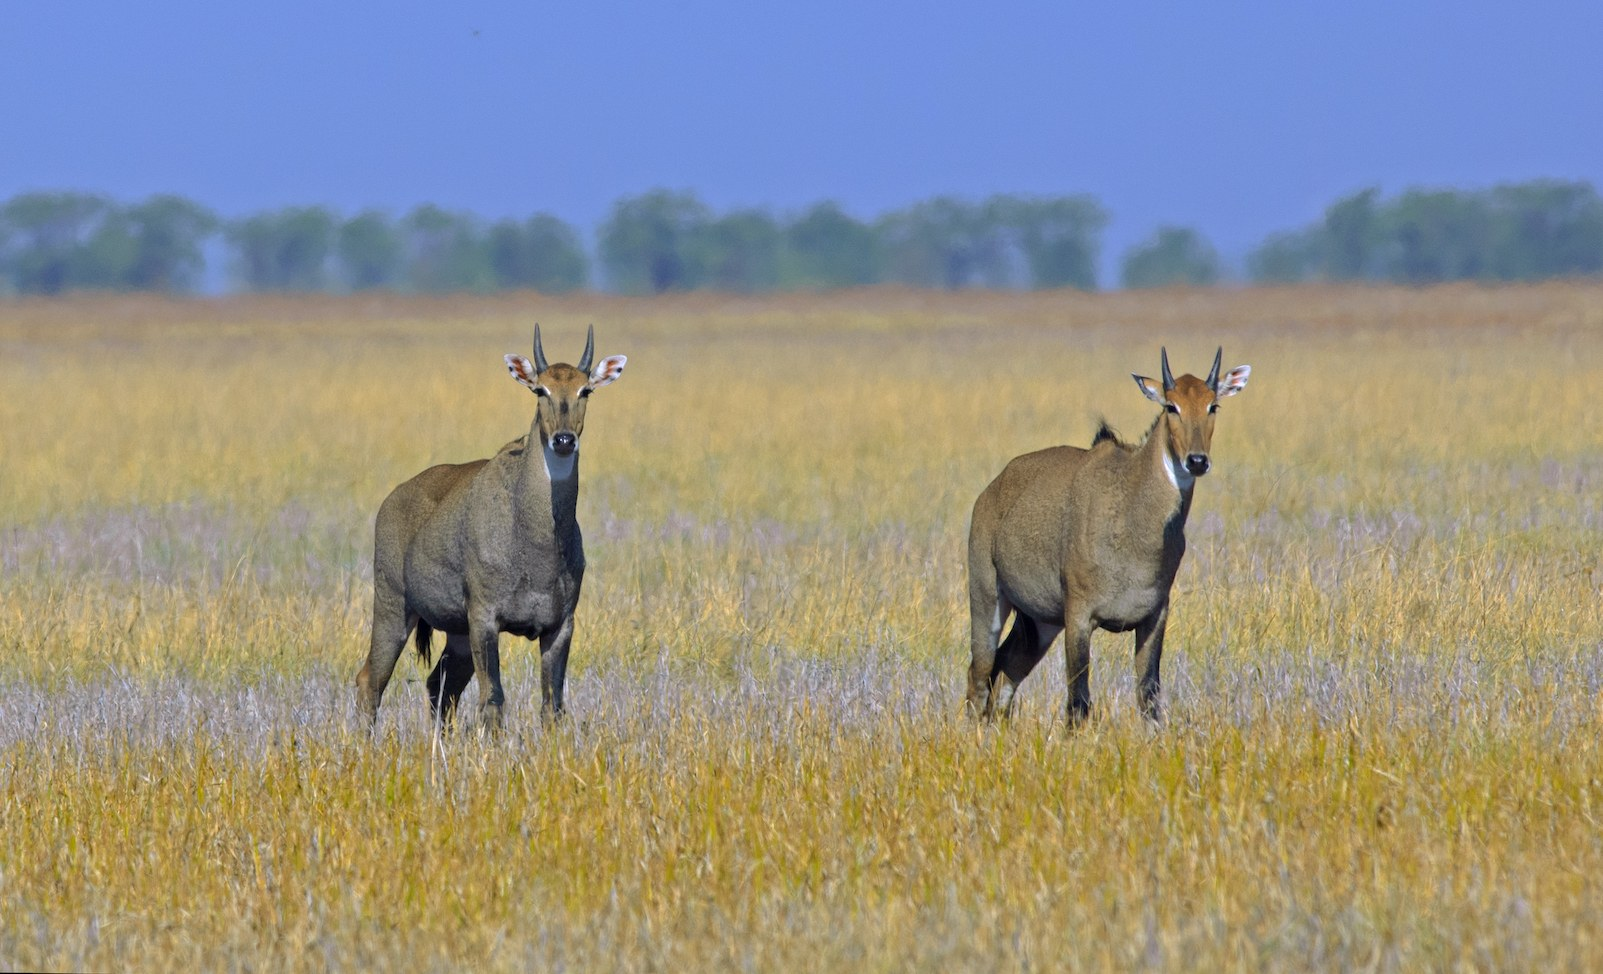 Male blackbuck (above) are easily distinguished from females, by their handsome, spiralling horns and darker bodies. Blackbuck and nilgais (below) were both prized by hunters in pre-Independence era. Photos: Dhritiman Mukherjee